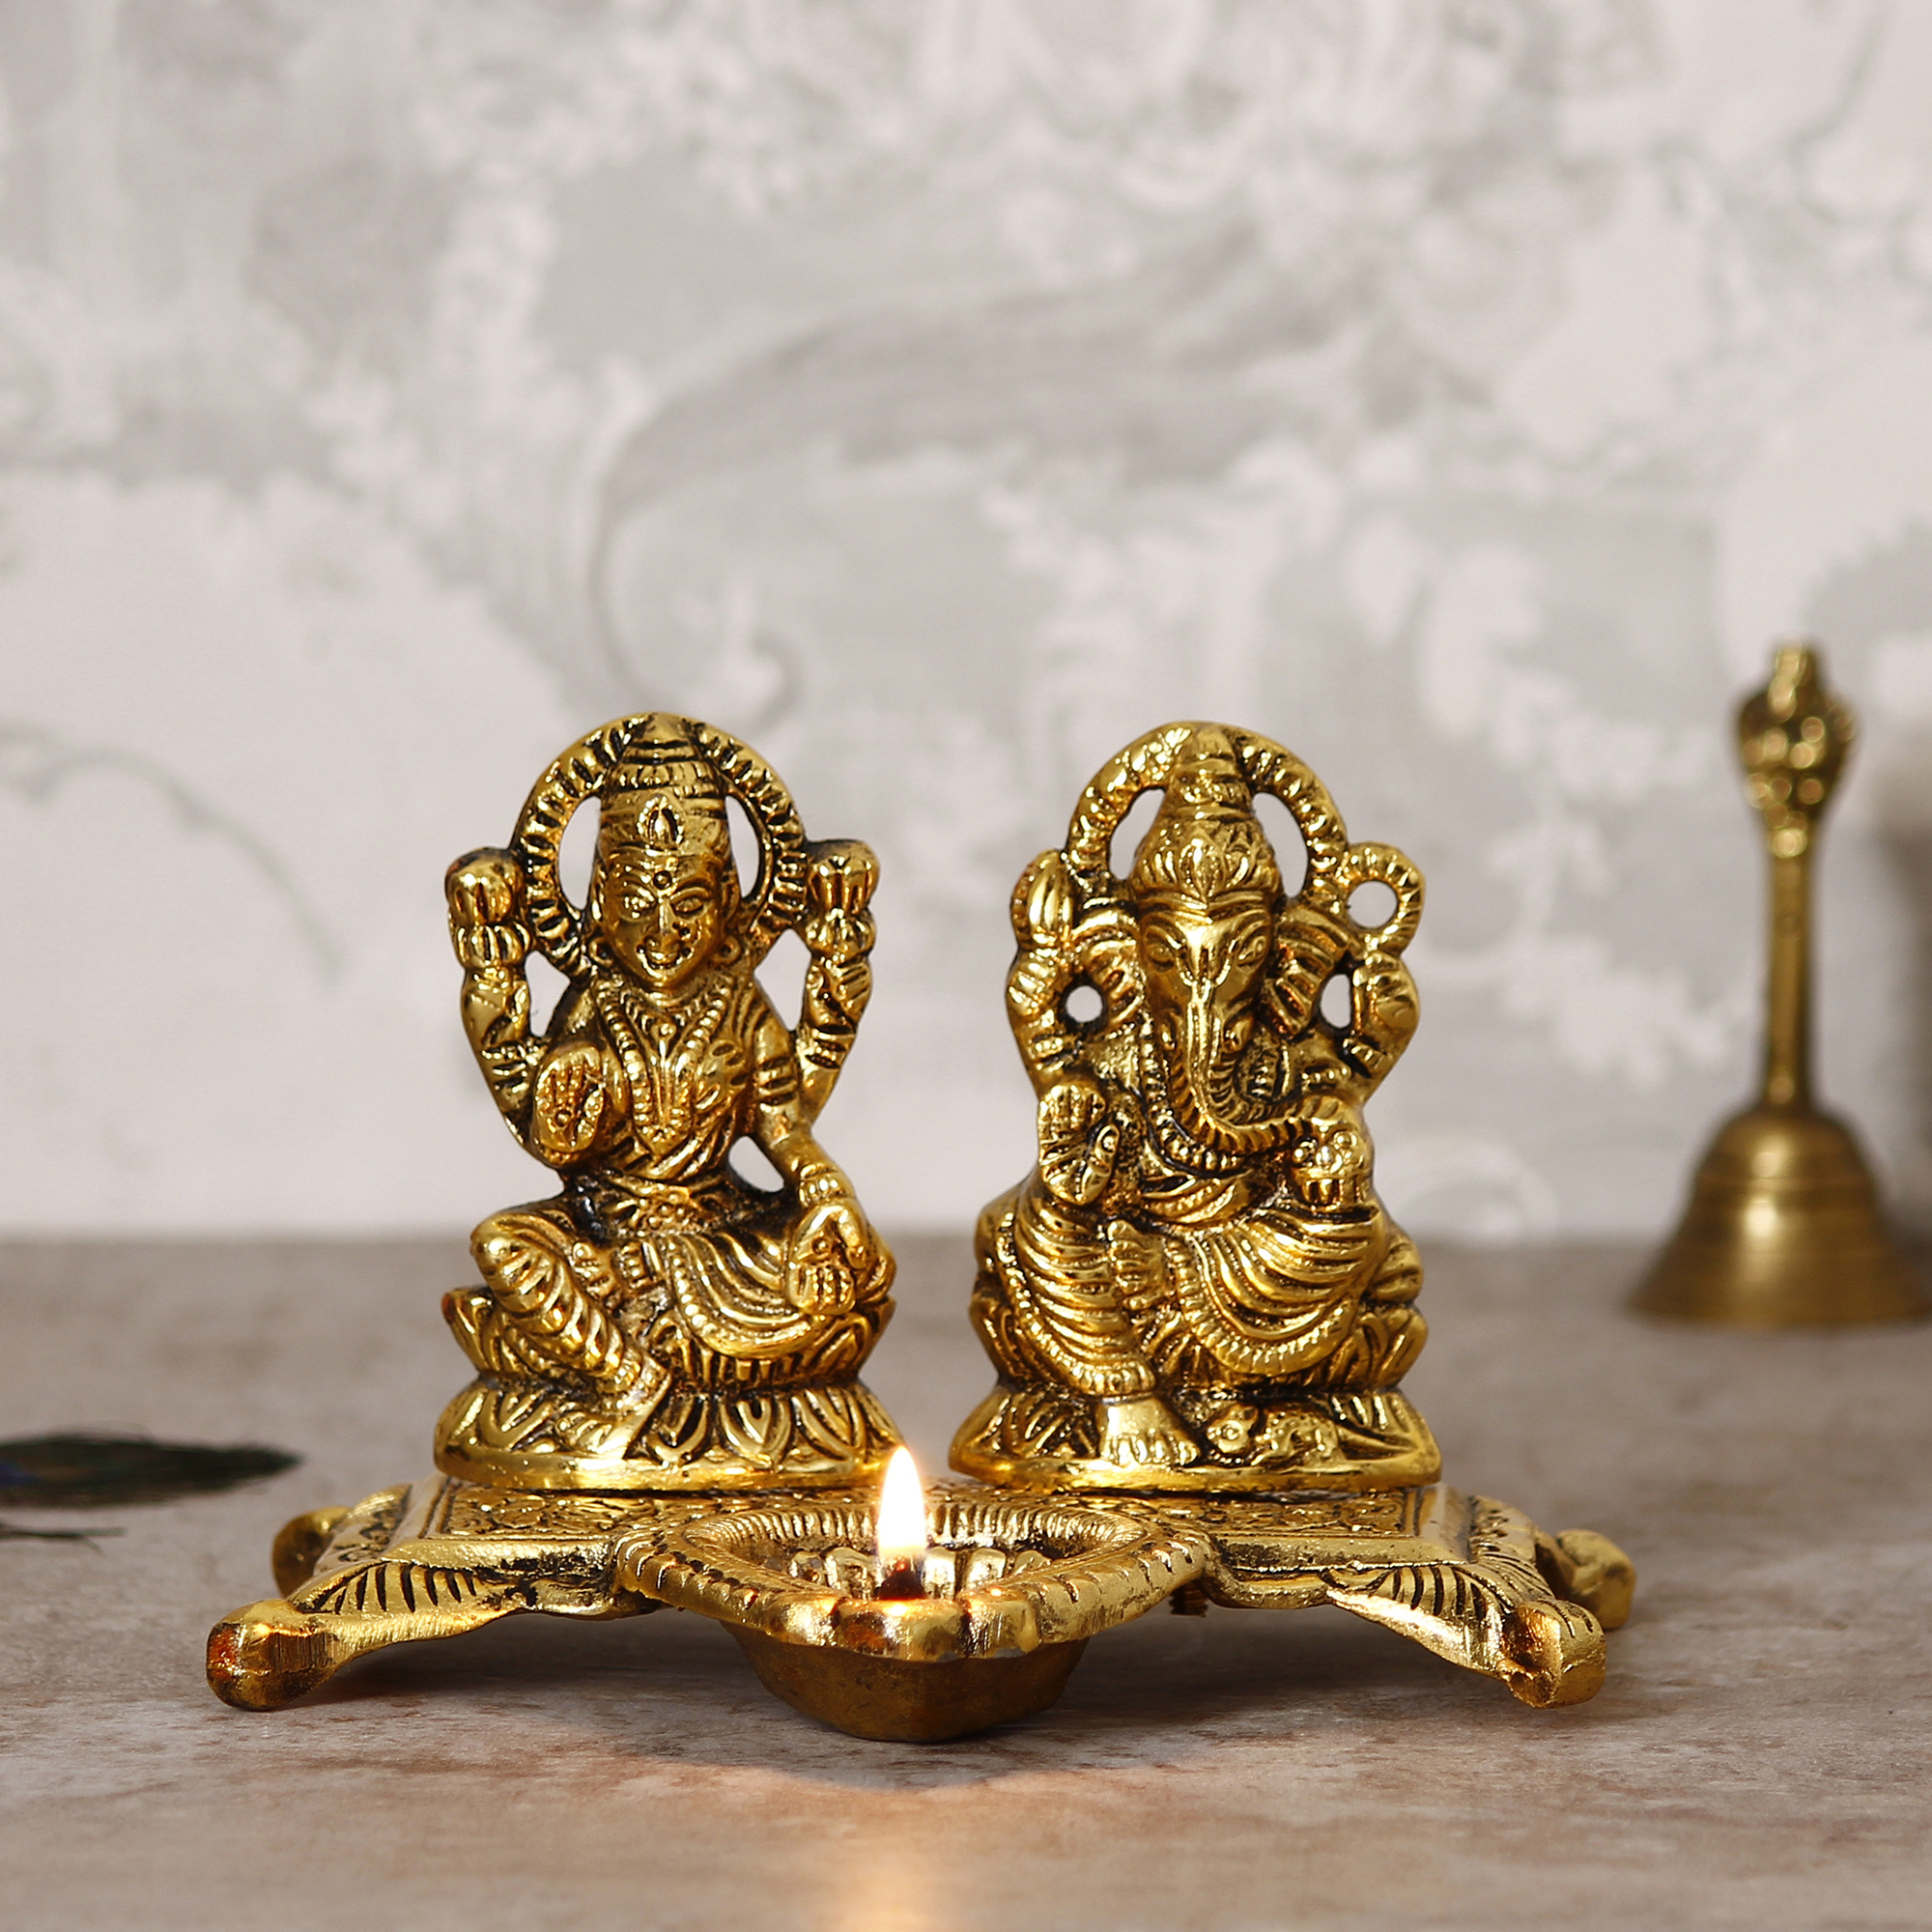 Golden Goddess Laxmi With Lord Ganesha Idol Metal Decorative Showpiece with Diya Indian Home Decor